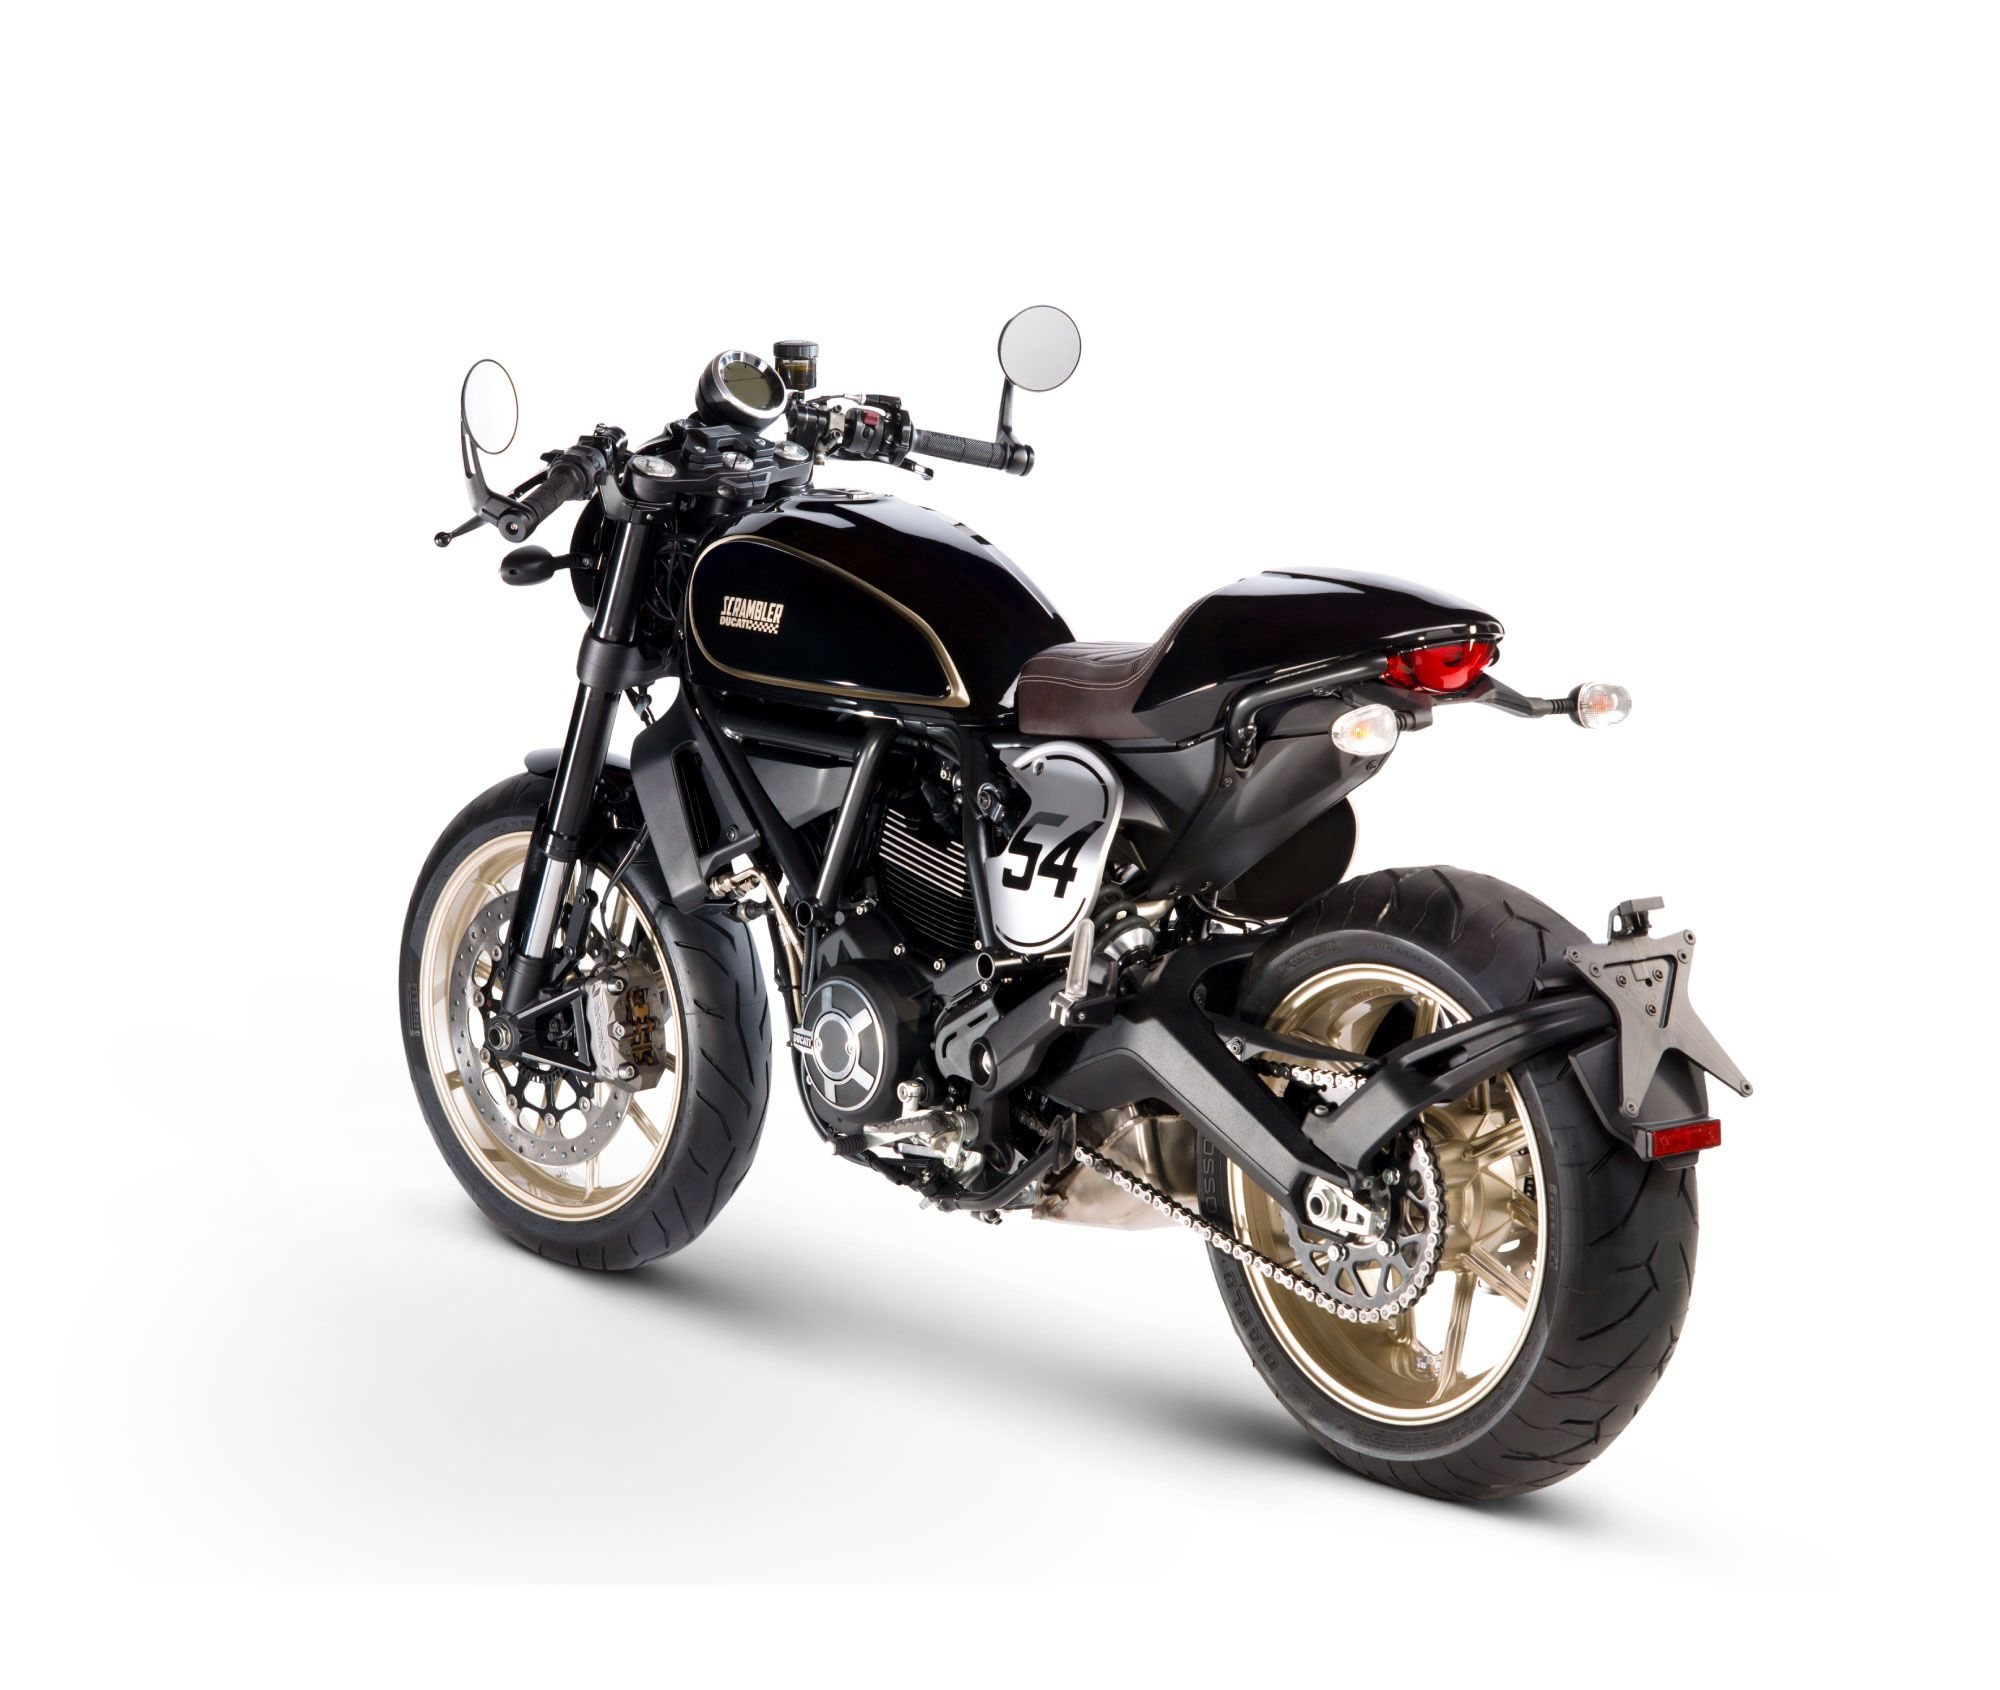 93a2ebac28e 2020 Bmw Cafe Racer 800 Performance from Ducati Cafe Racer 800 Specs -  2017, 2018, 2019 - Autoevolution with 2020 Bmw Cafe Racer 800